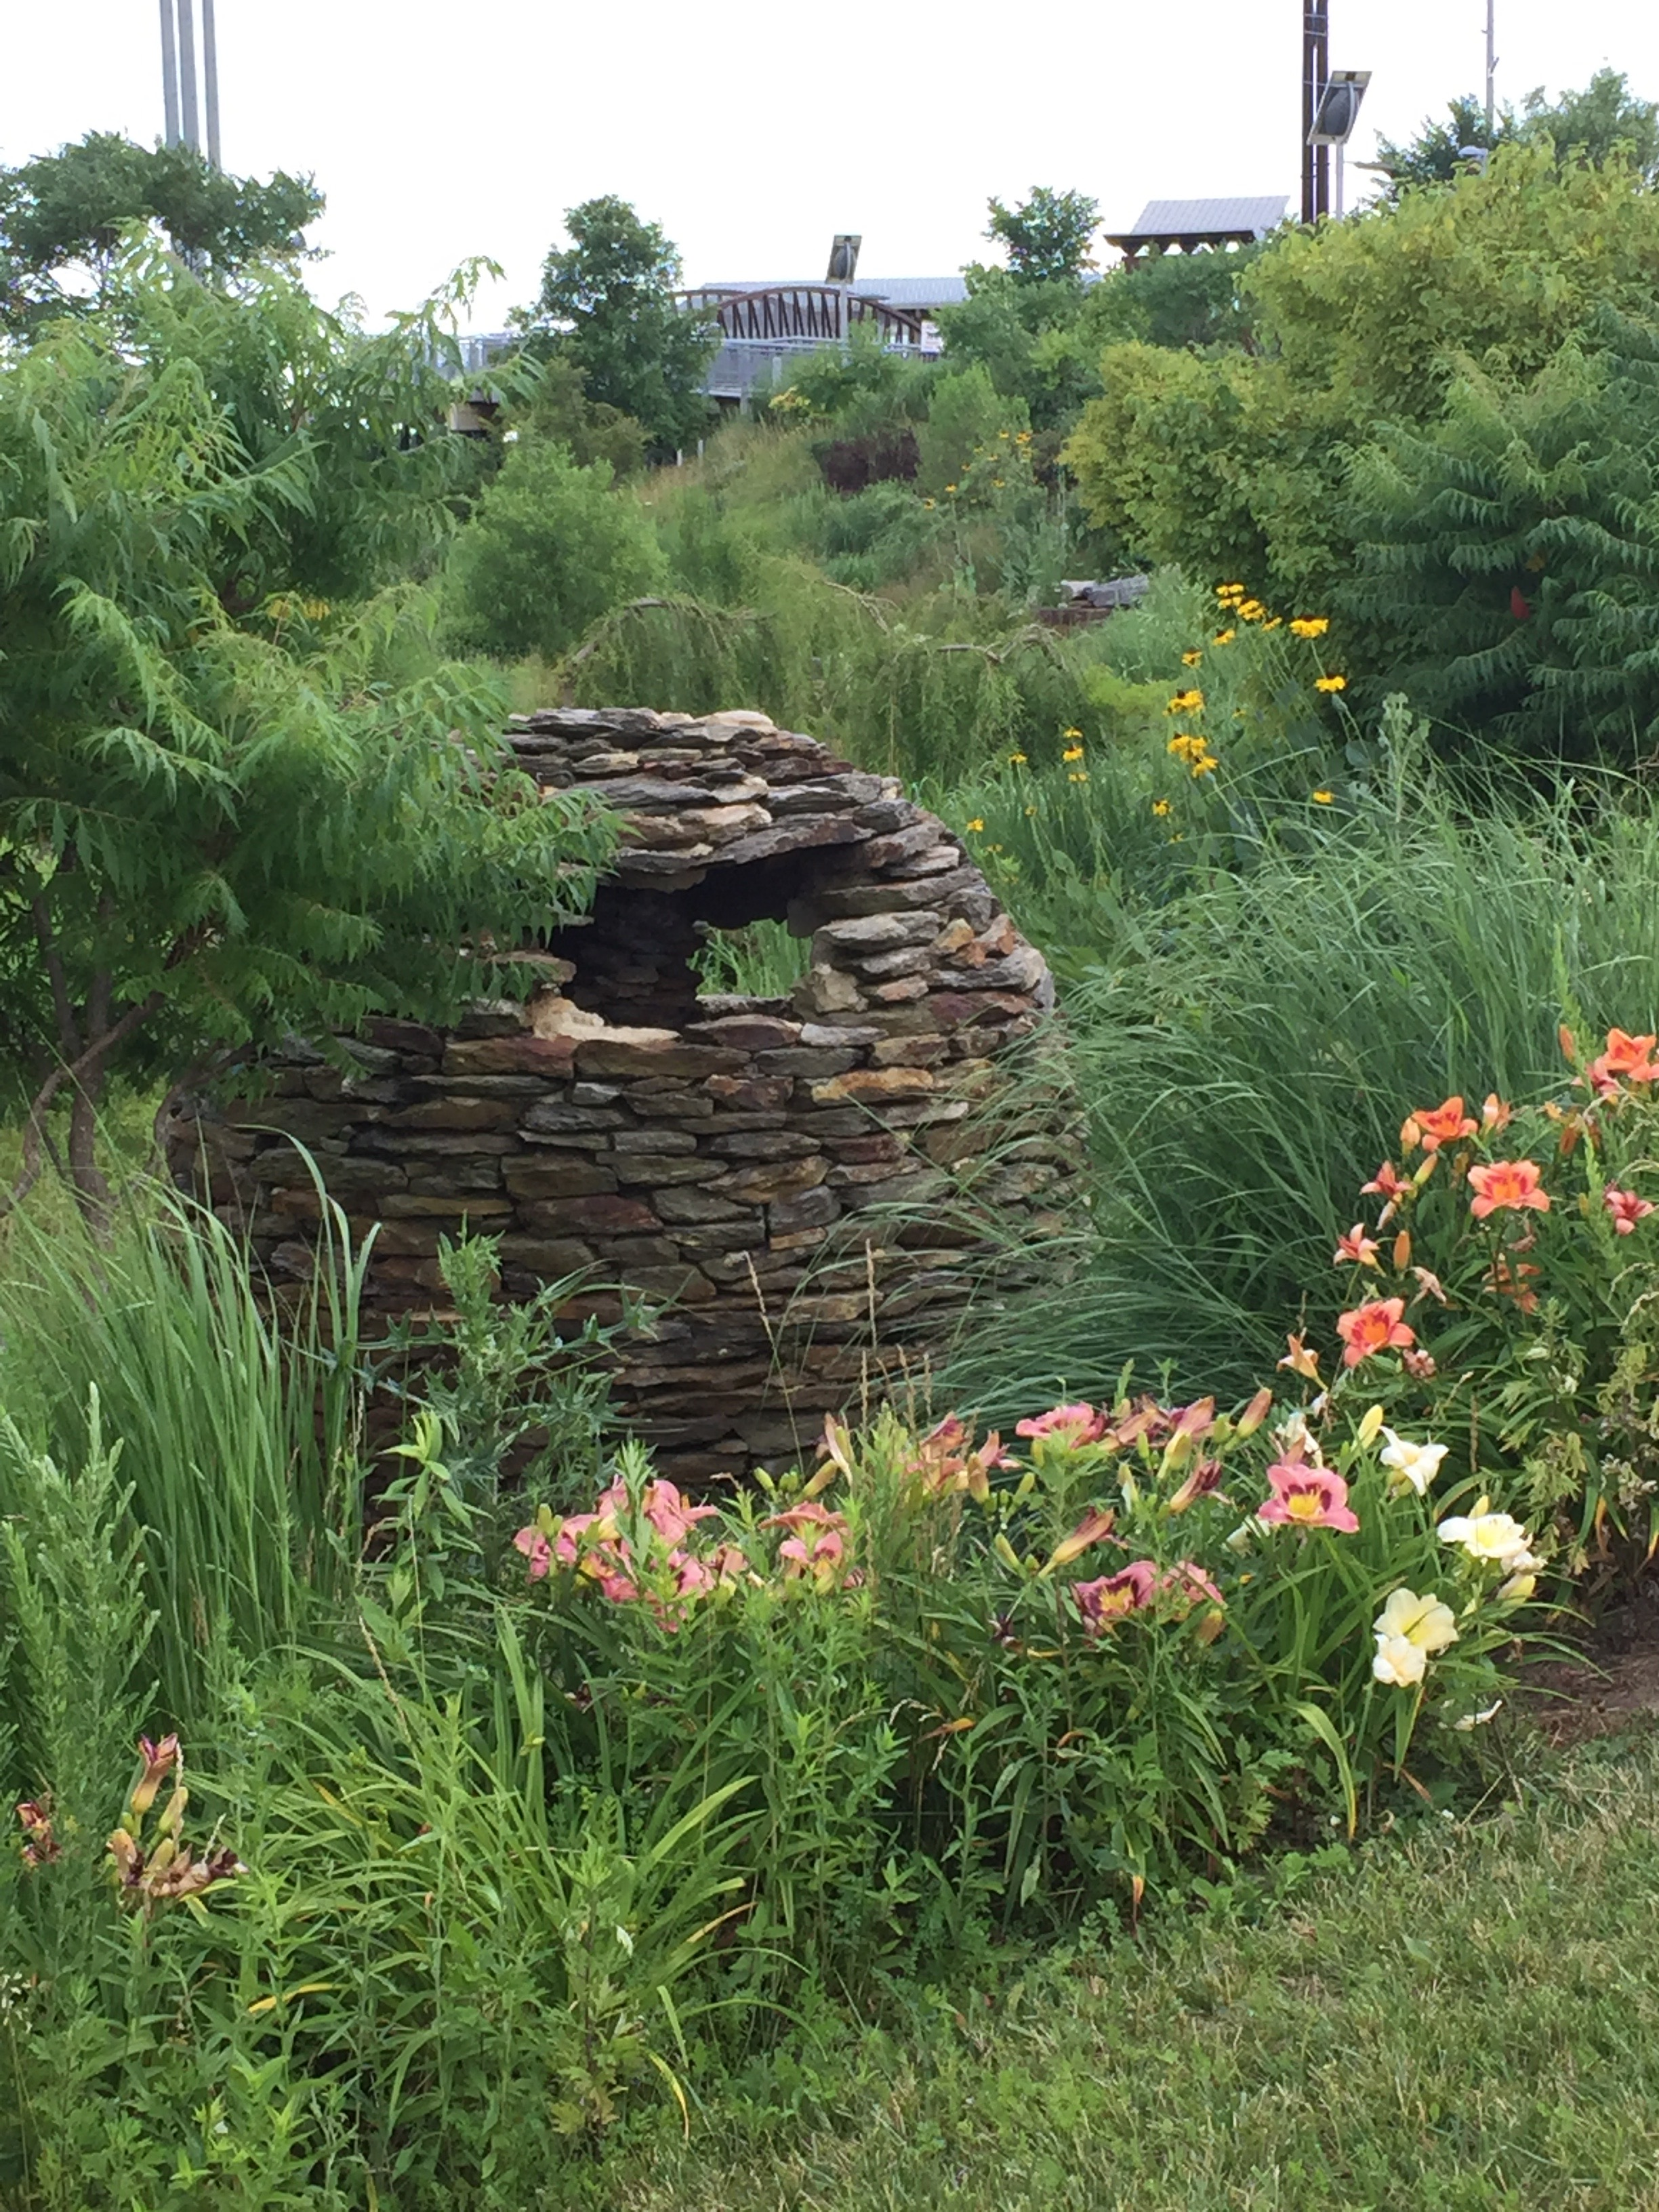 Before You Even Get To The DuPont Center, The Gardens Are A Gorgeous  Welcome To The Area.